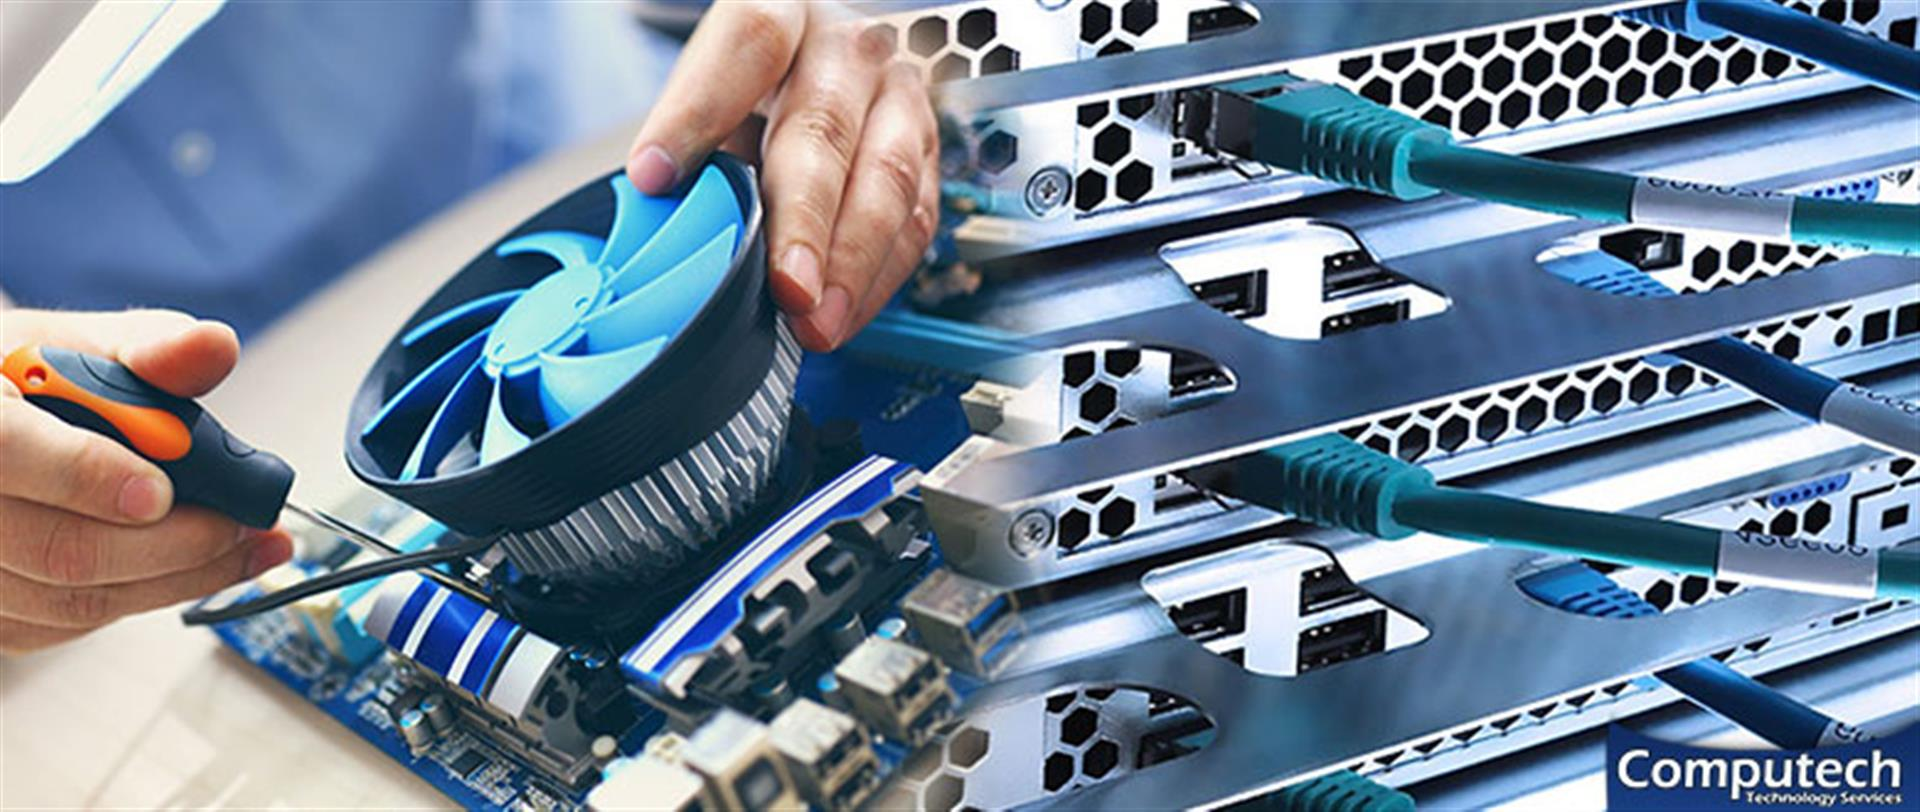 Braselton Georgia On-Site PC & Printer Repairs, Networks, Voice & Data Cabling Contractors